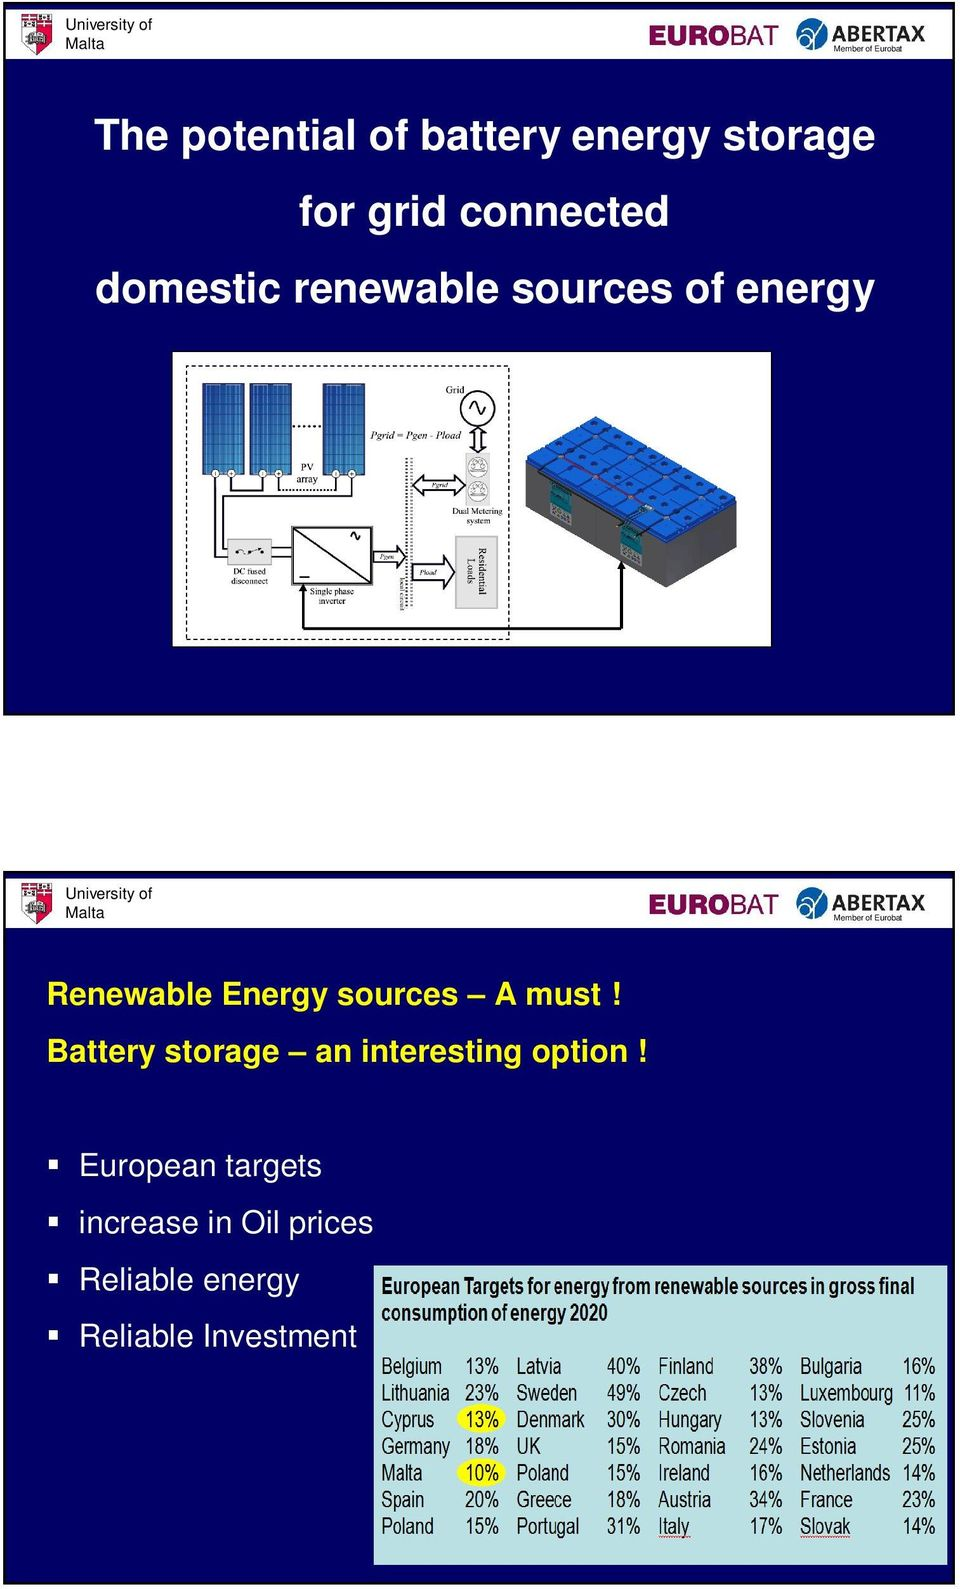 sources A must! Battery storage an interesting option!